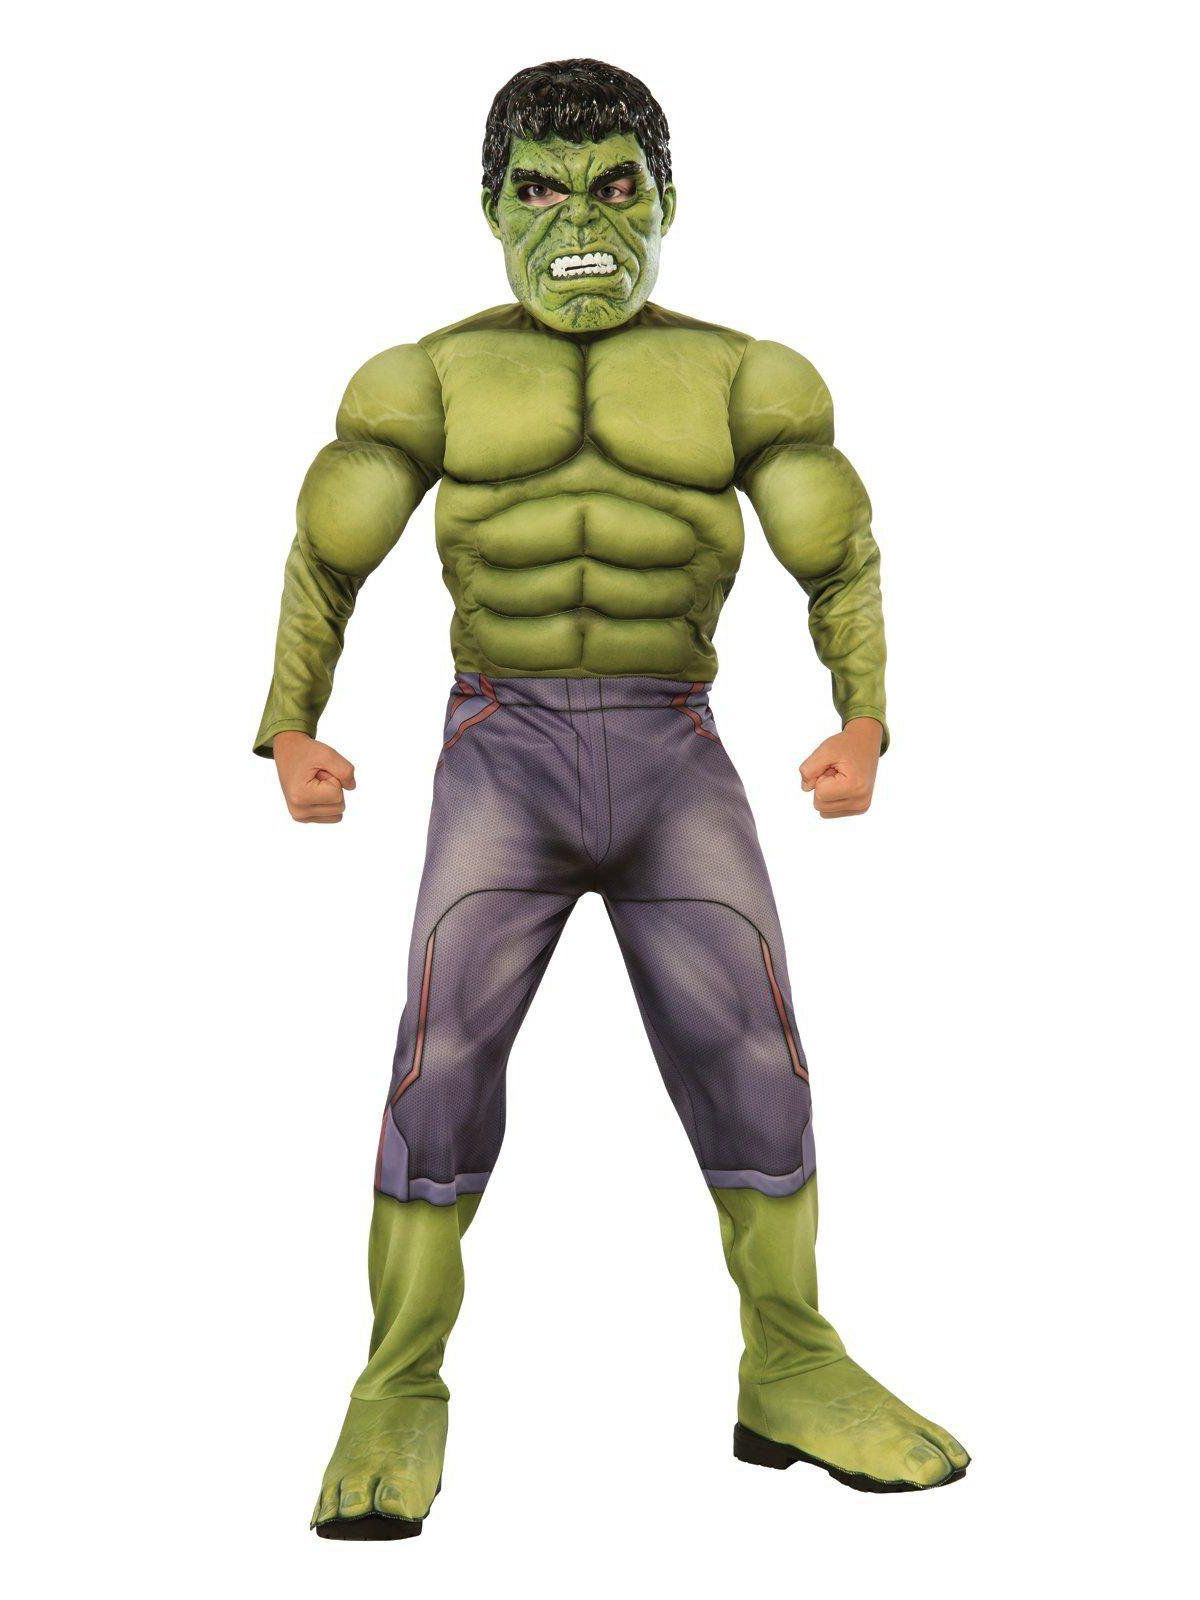 Thor Ragnarok - Hulk Costume For Children  sc 1 st  Wholesale Halloween Costumes & Thor: Ragnarok - Hulk Costume For Children | Wholesale Halloween ...